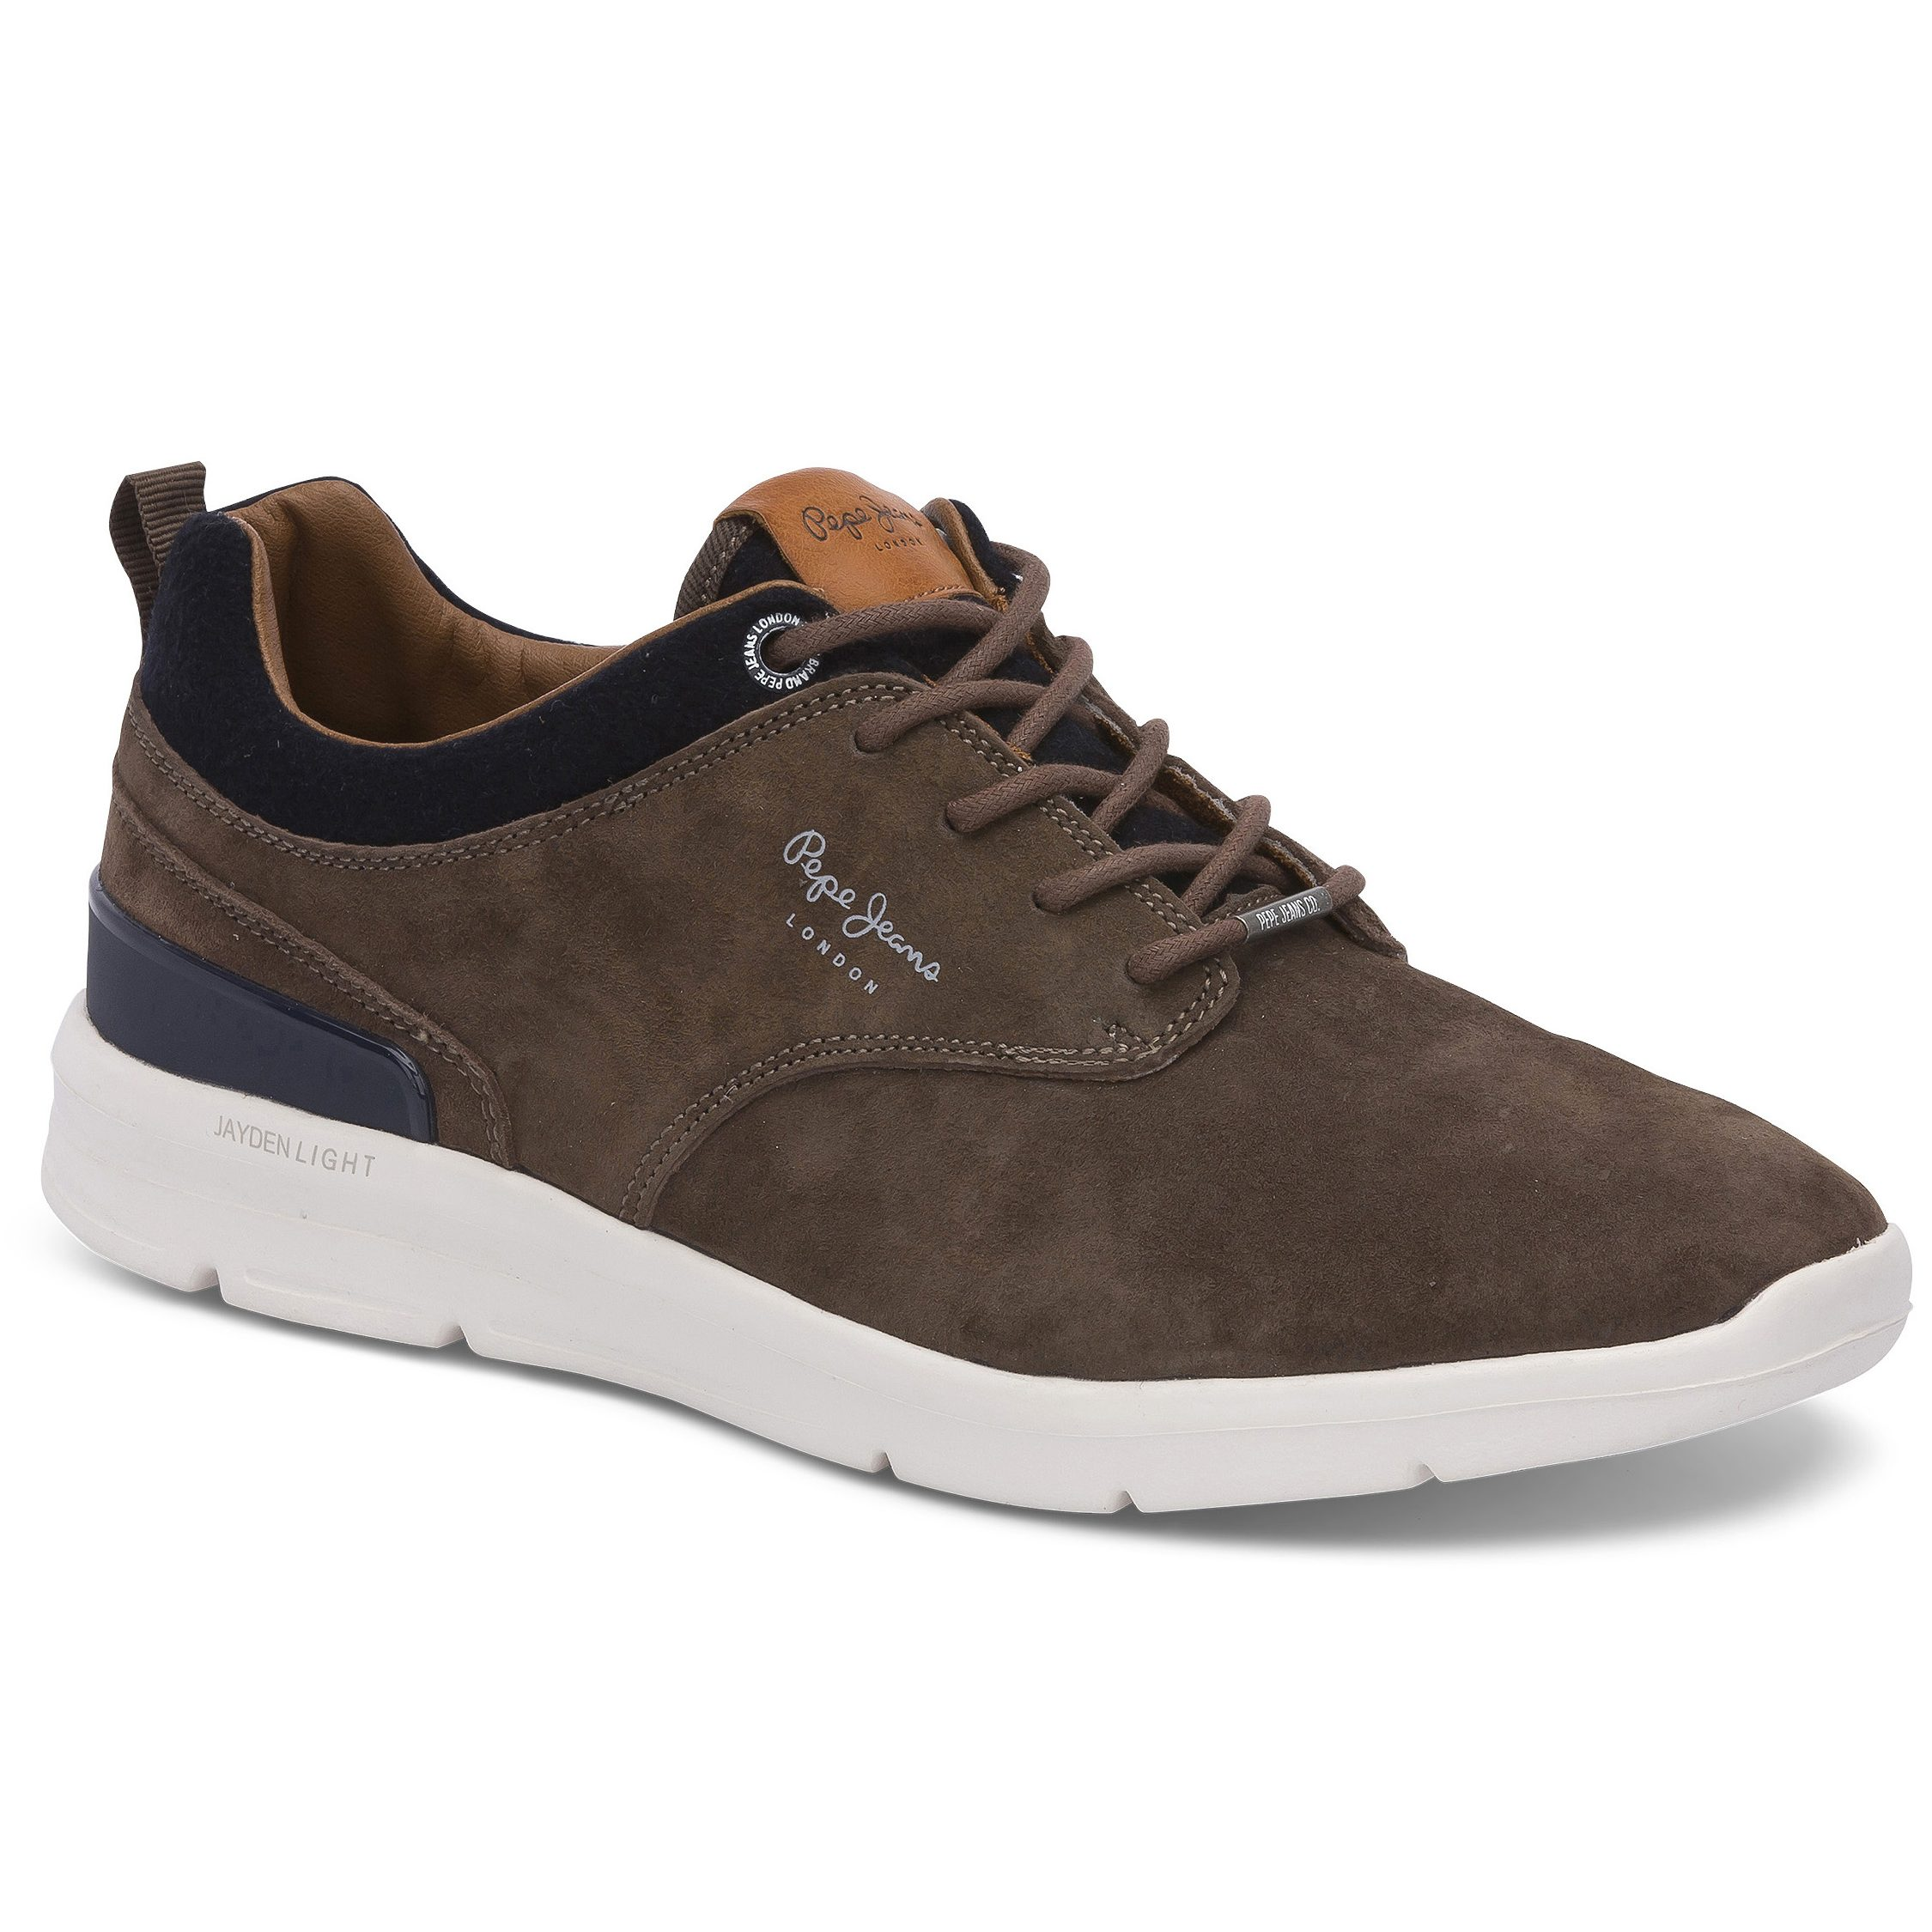 Pepe Jeans – JAYDEN SUEDE Ανδρικό Καφέ. Pepe Jeans 0246fc40229